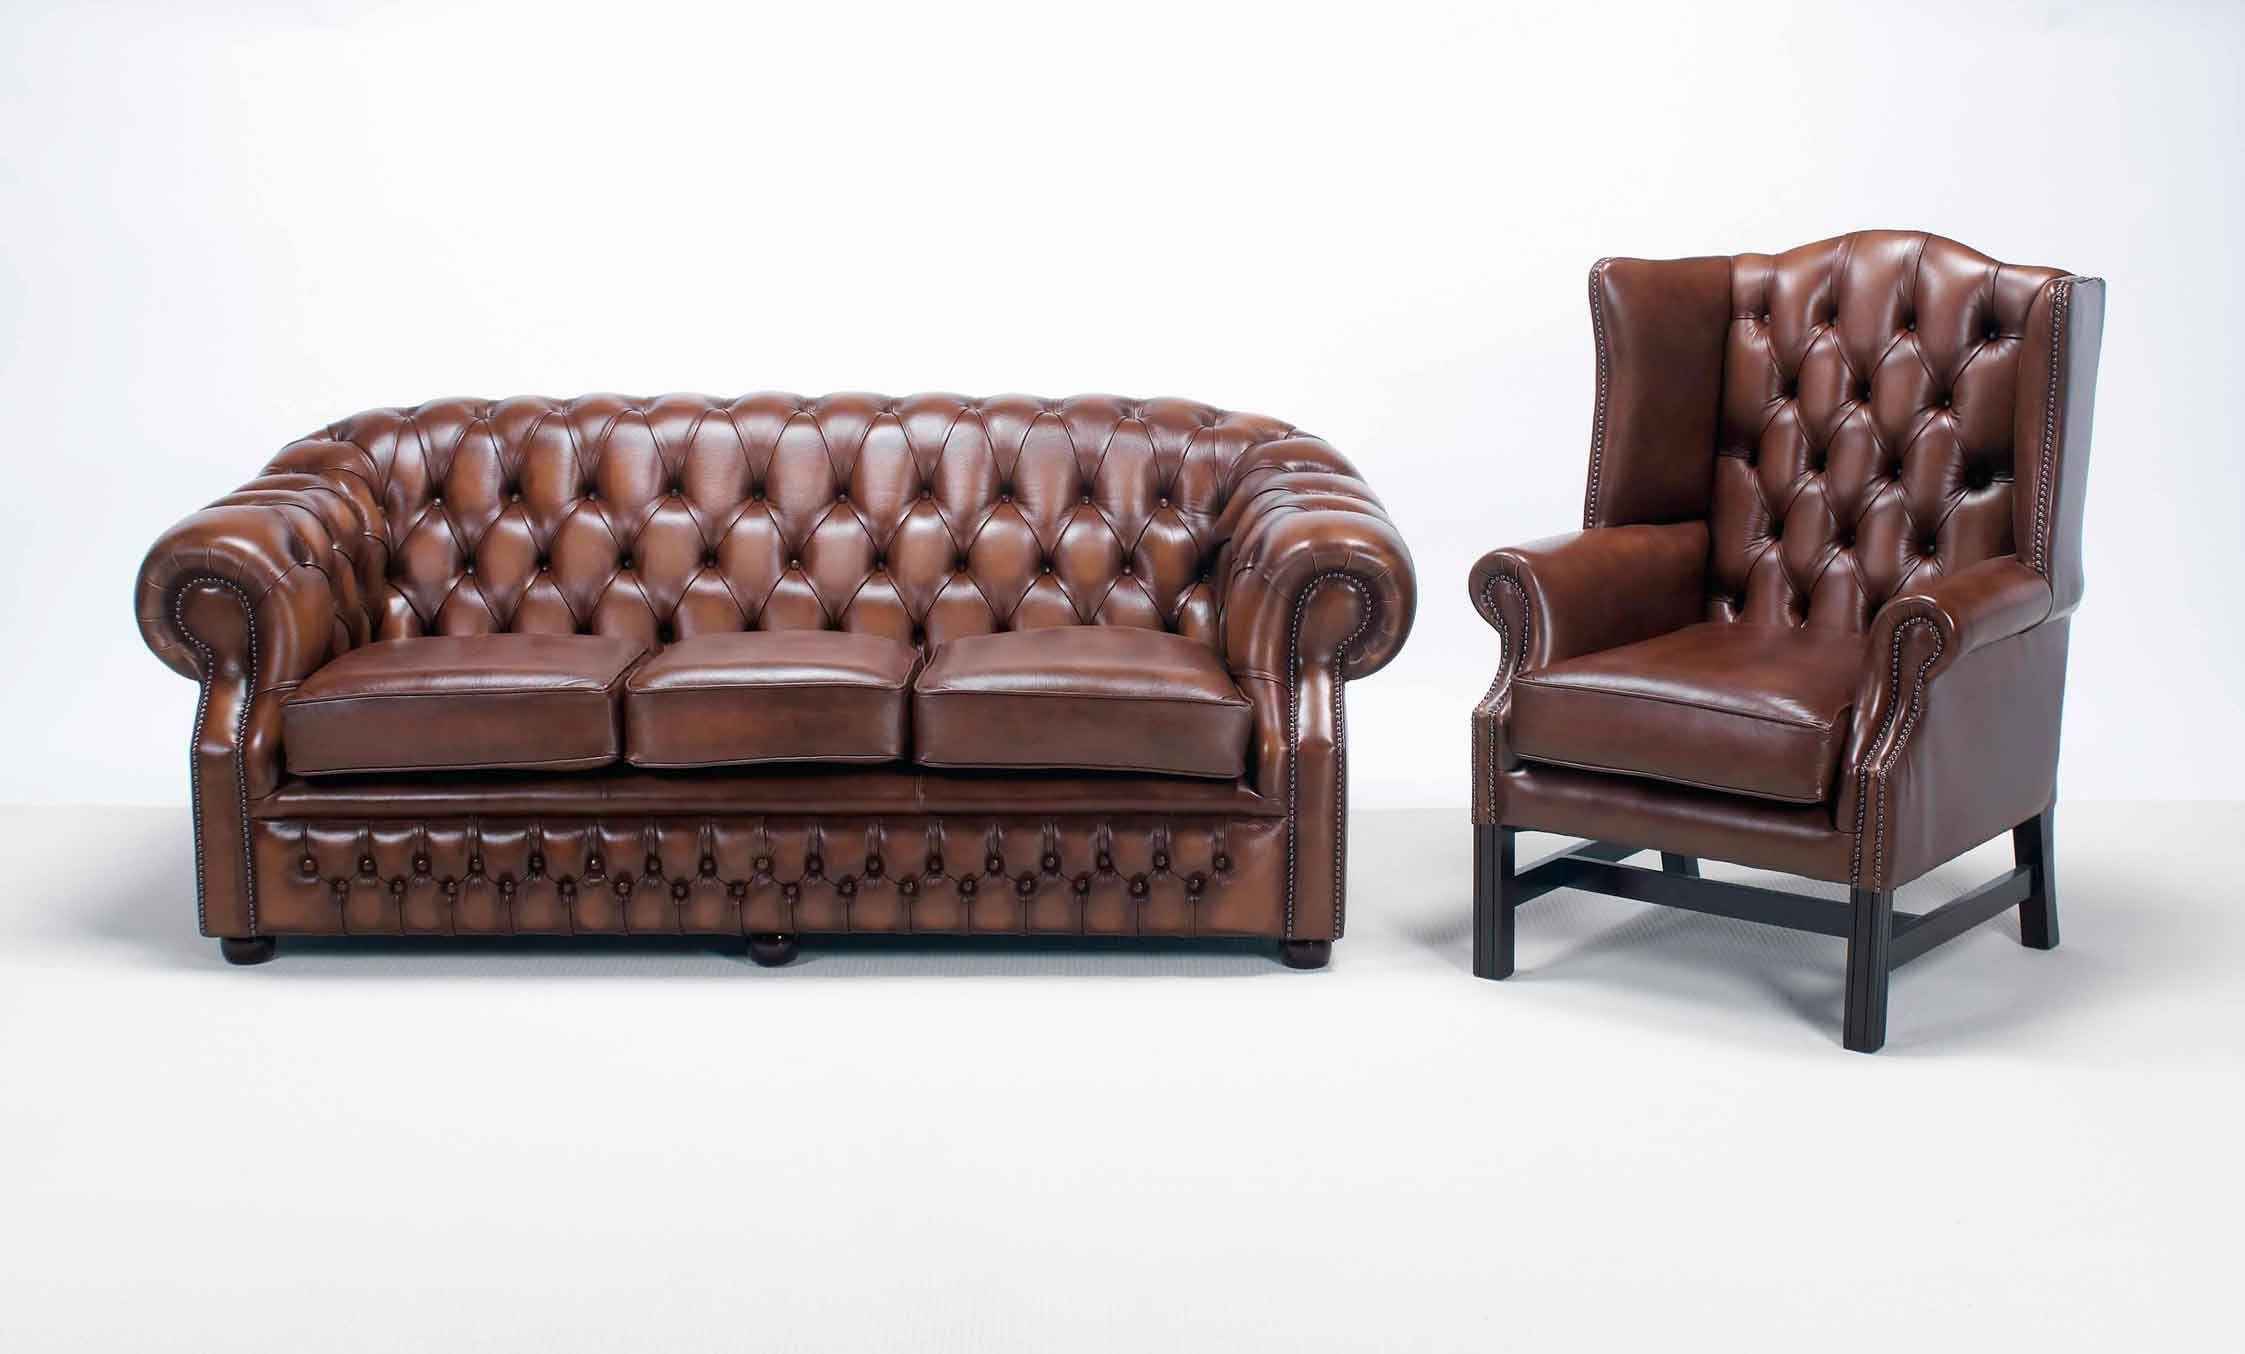 How To Identify A Real Chesterfield Sofa — Interior Home Design within Chesterfield Sofas And Chairs (Image 12 of 15)